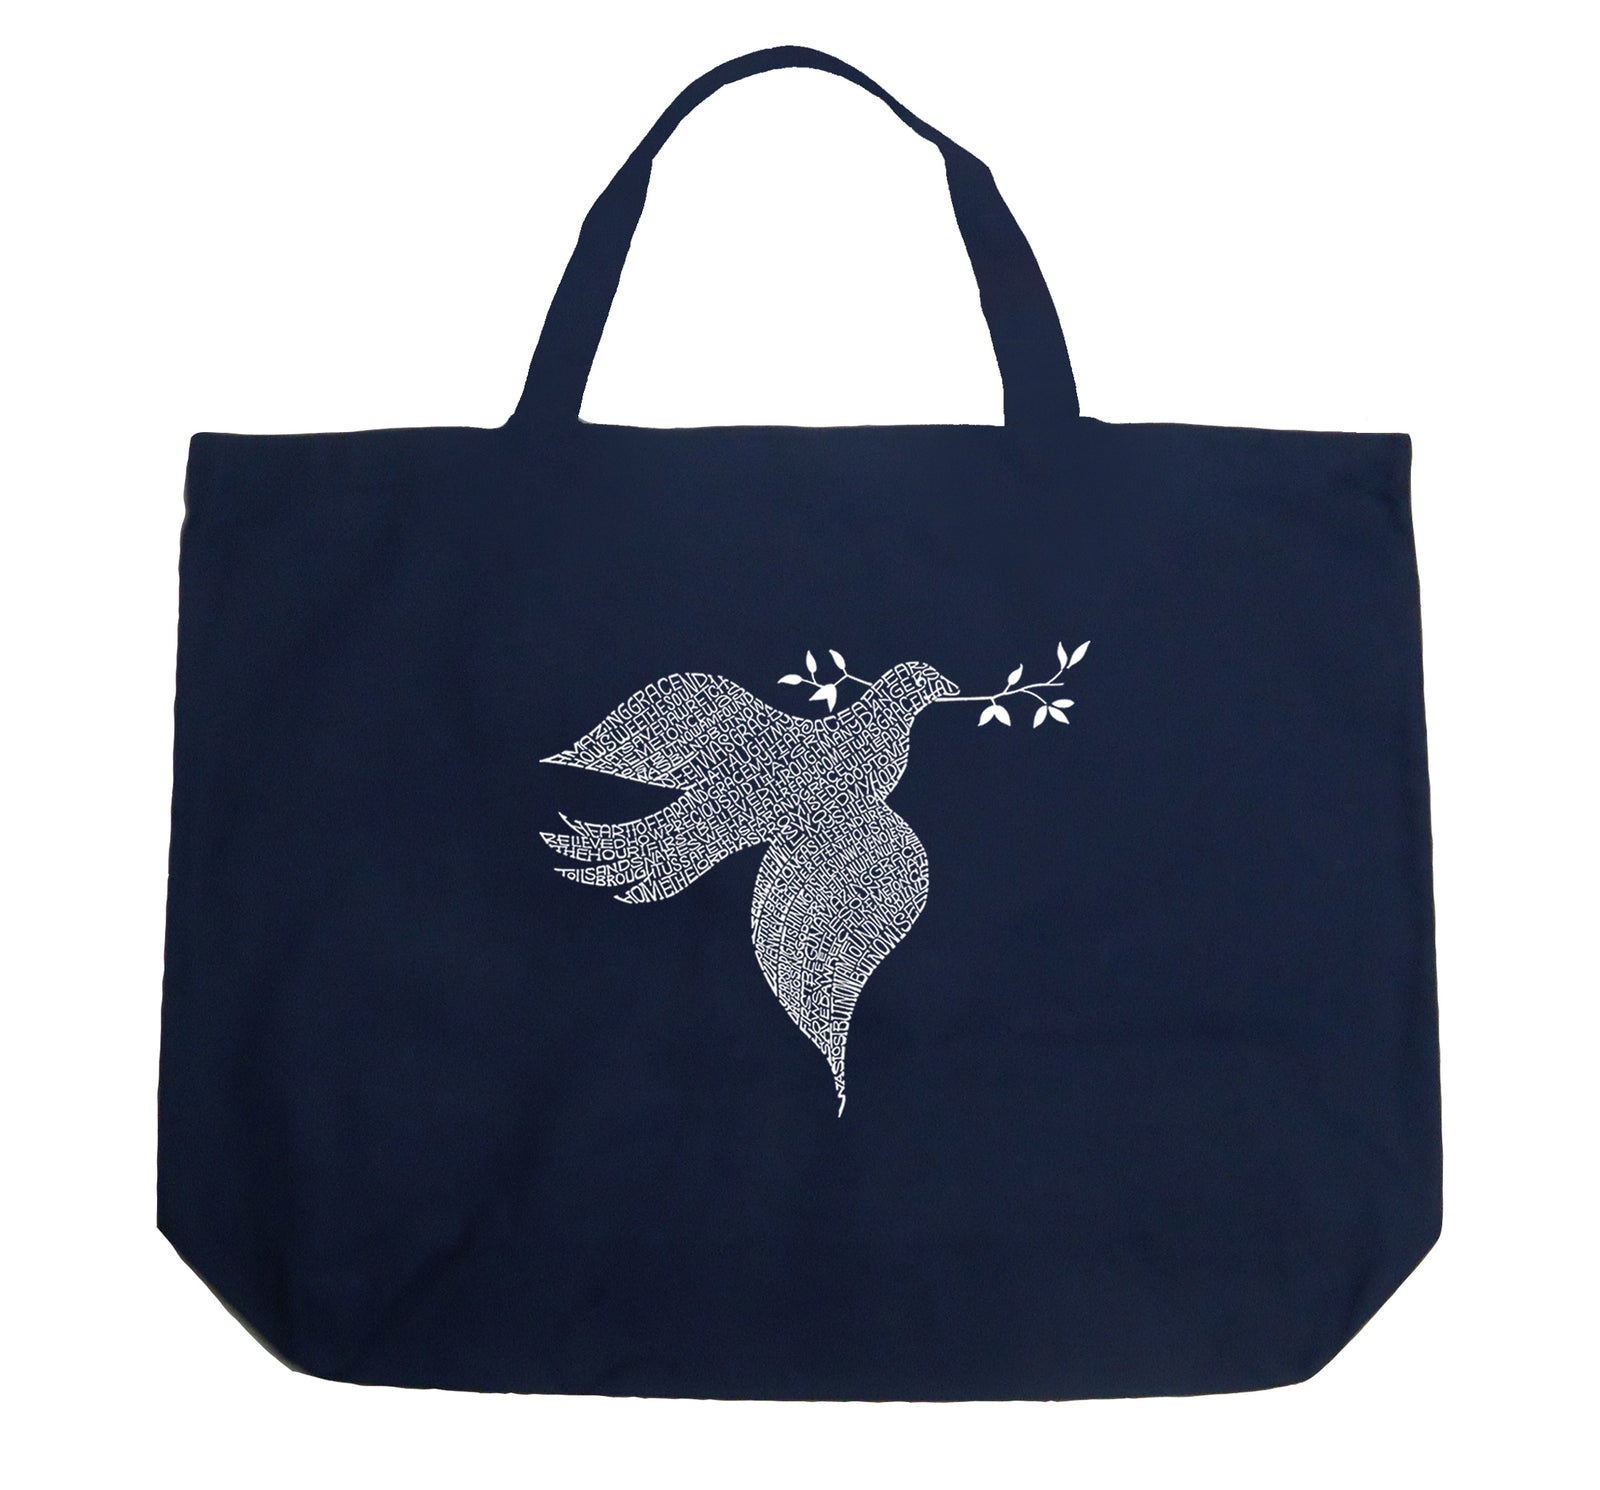 Los Angeles Pop Art Large Tote Bag - Dove